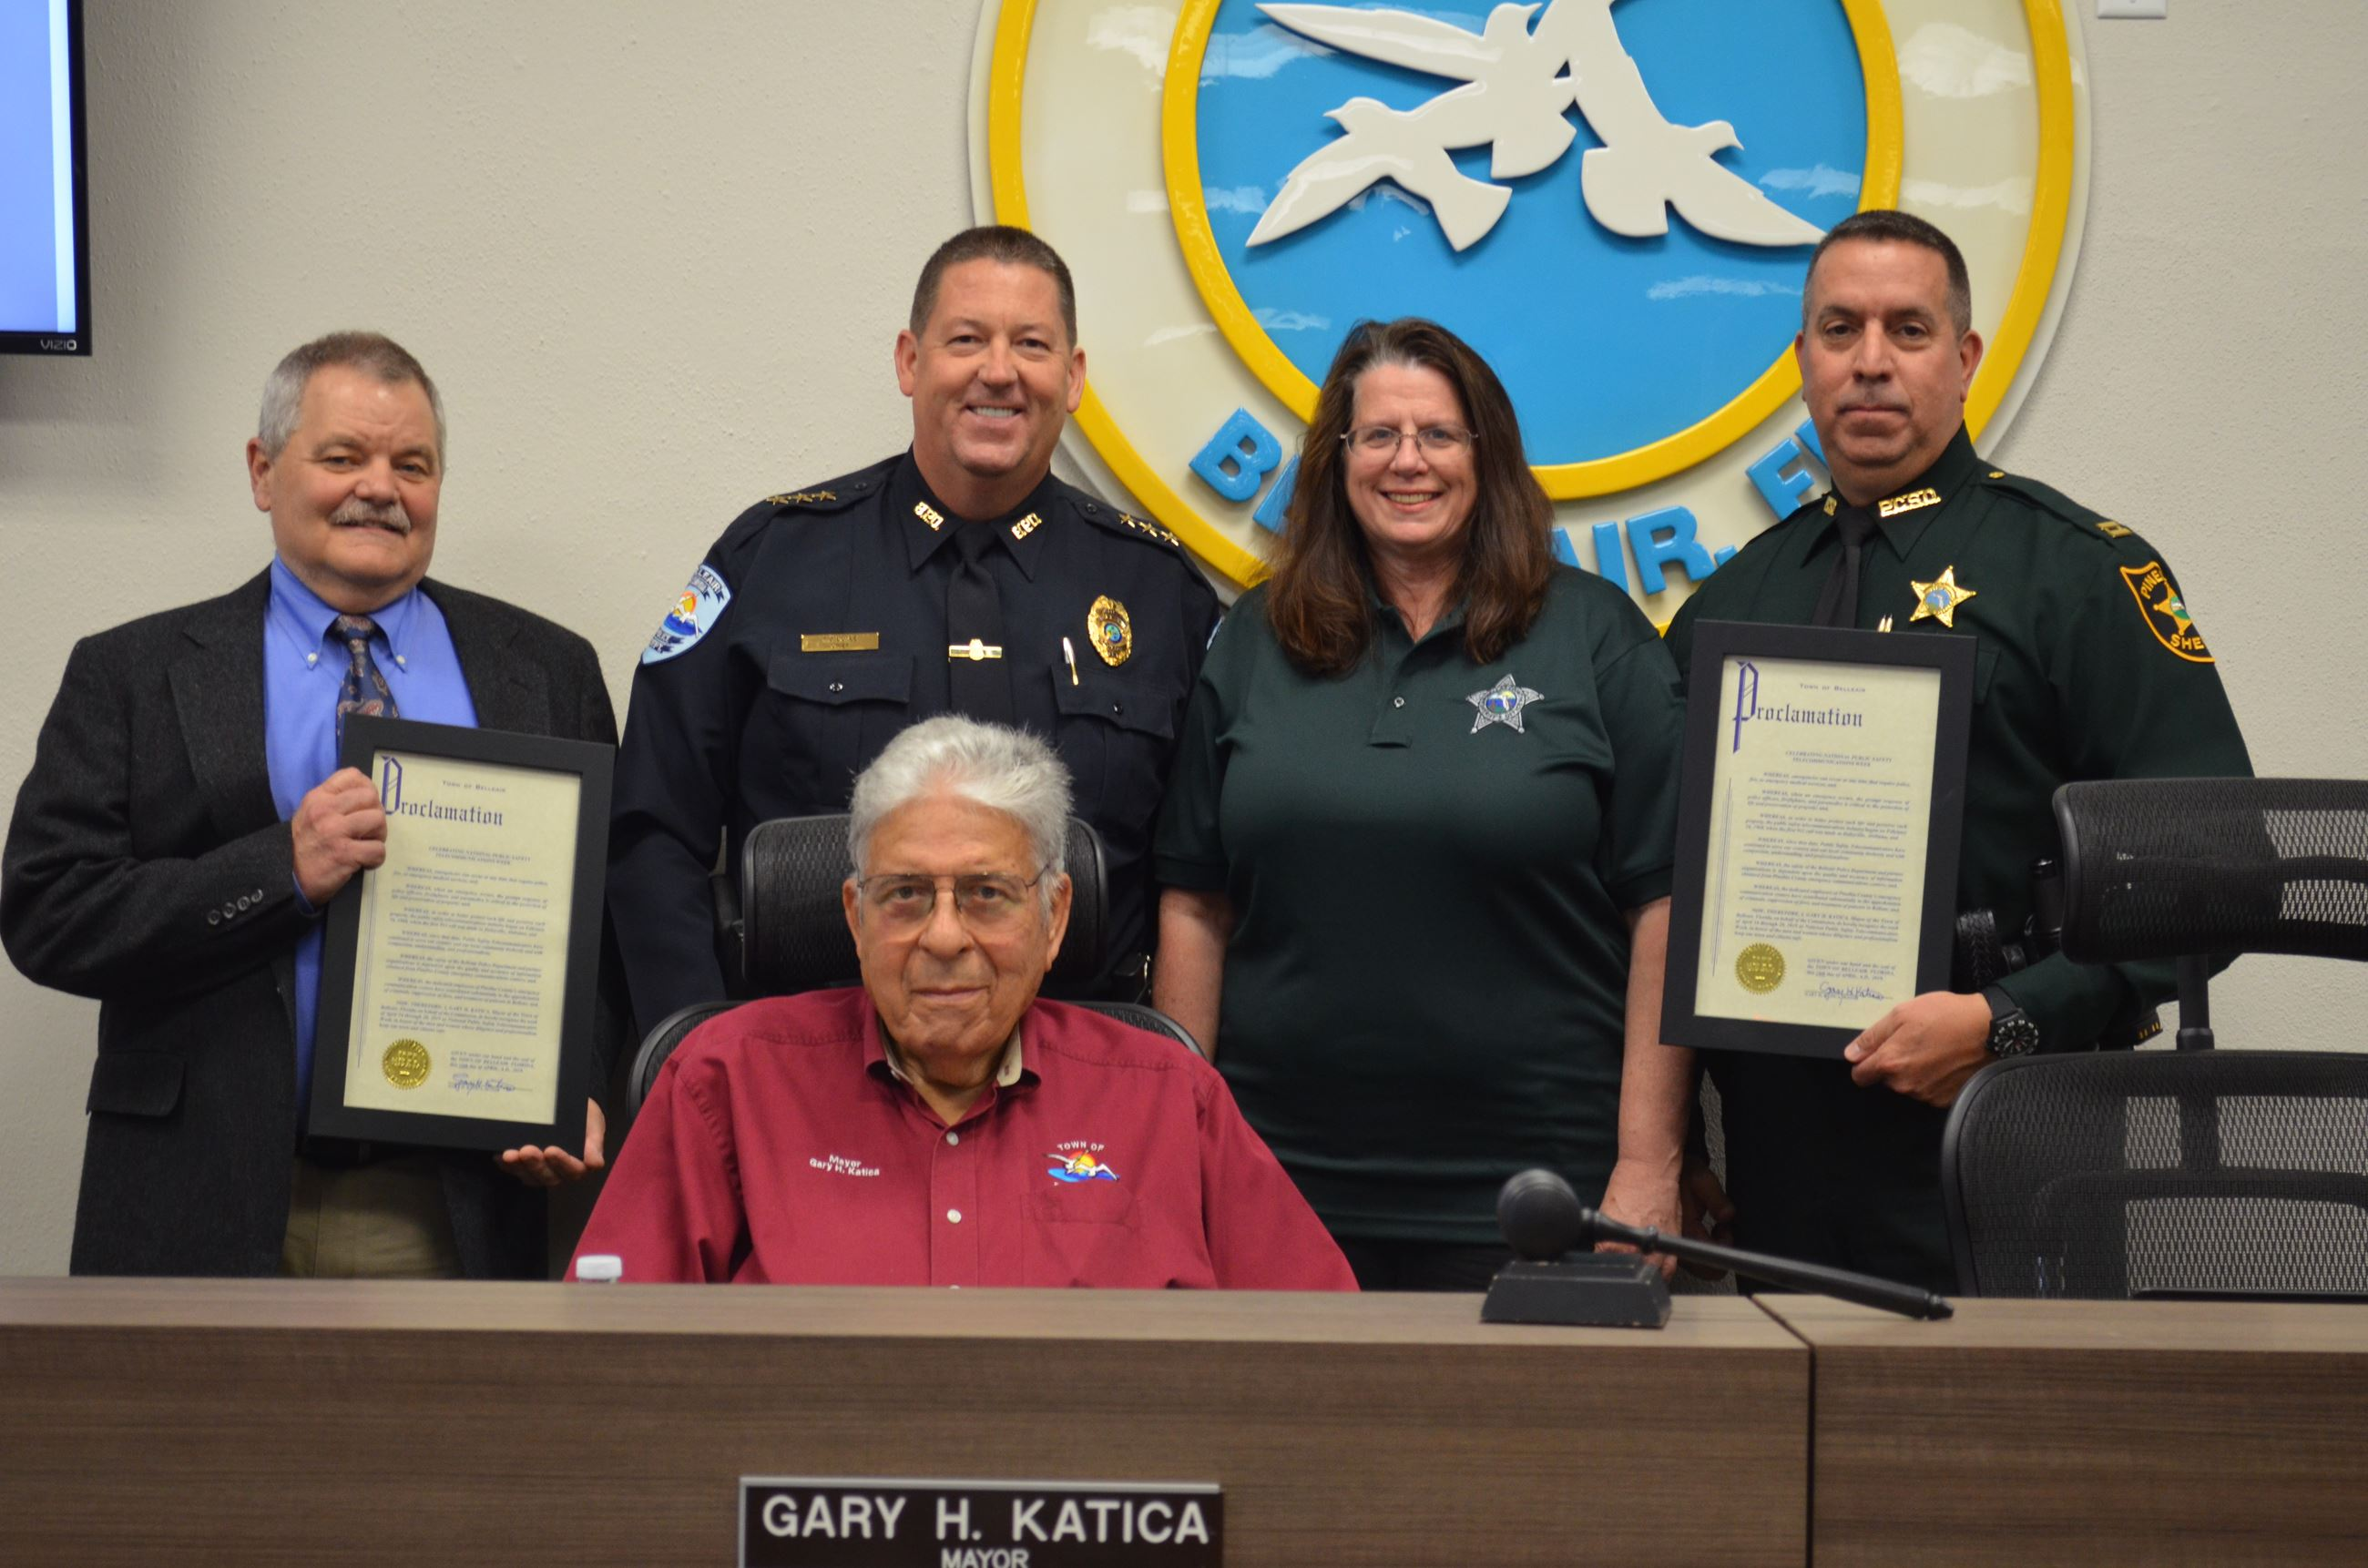 Photo of representatives from 911 call centers, Belleair&#39s Chief of Police, and Belleair&#39s May